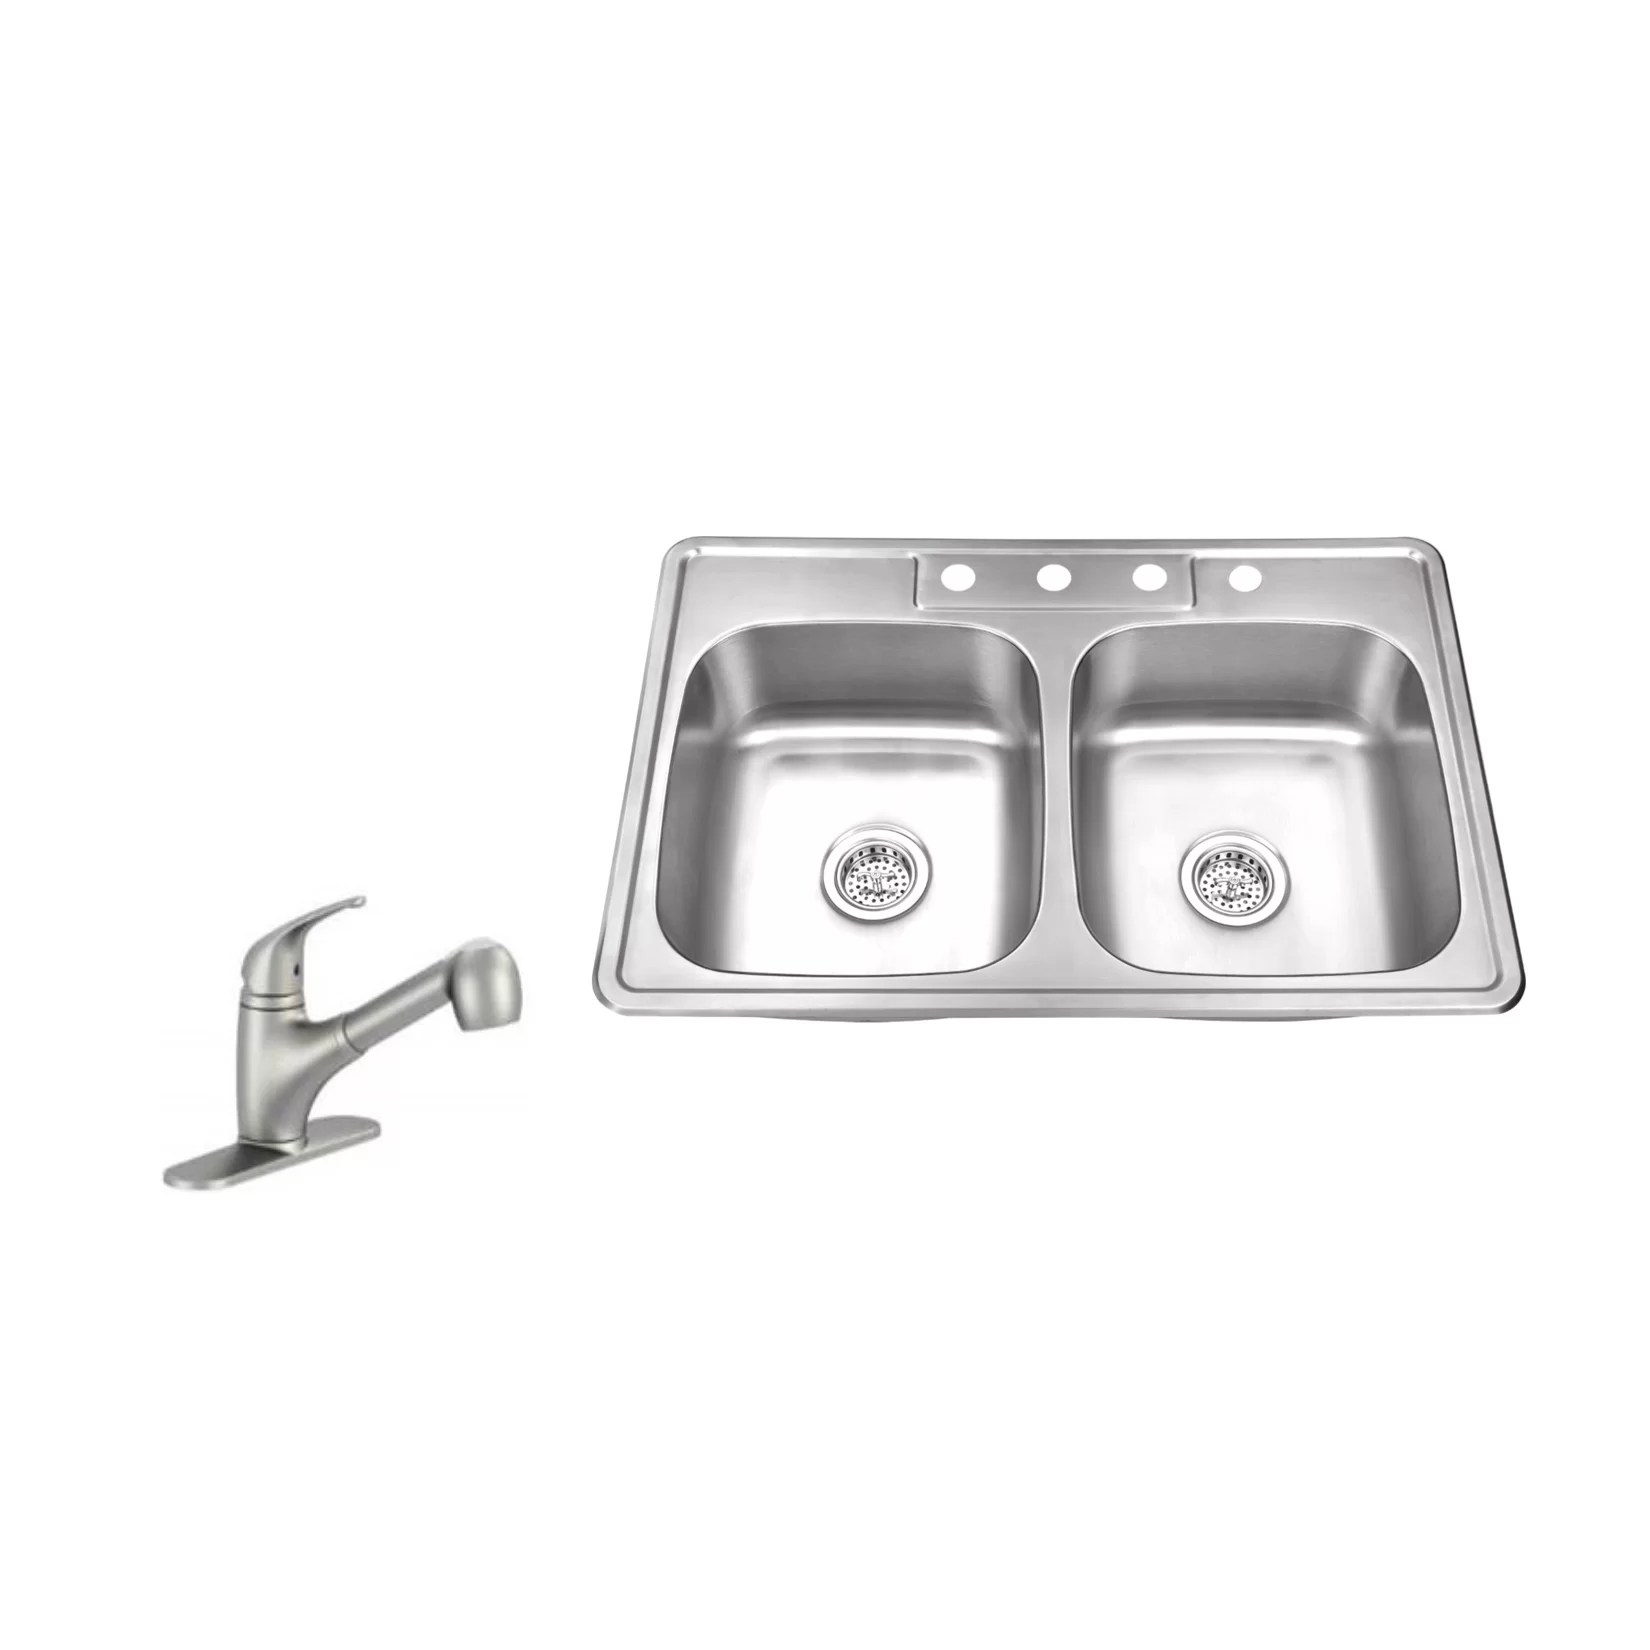 stainless steel kitchen sinks 33 x 22 delta single handle faucet repair soleil quot double bowl drop in